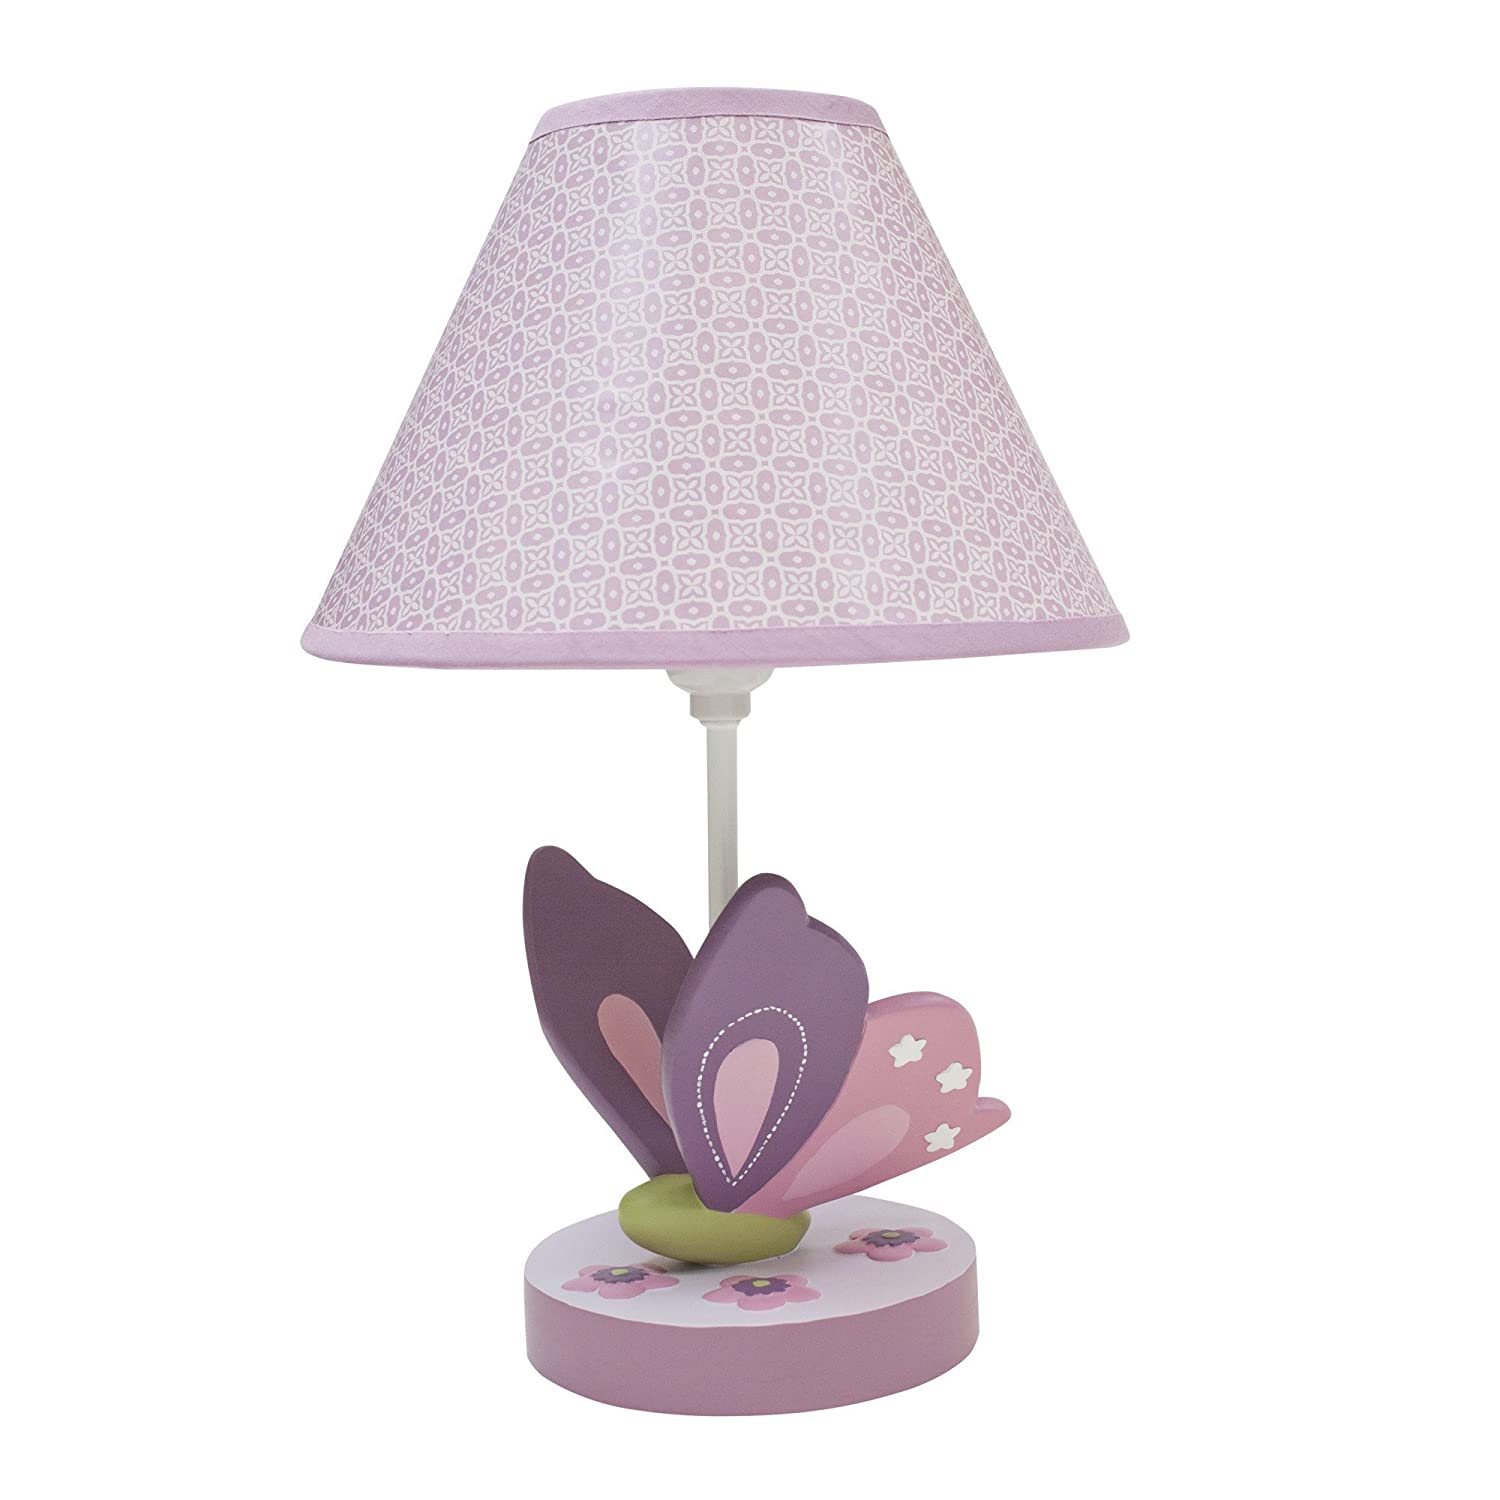 Lambs & Ivy Butterfly Bloom Lamp with Shade and Bulb 084122575240